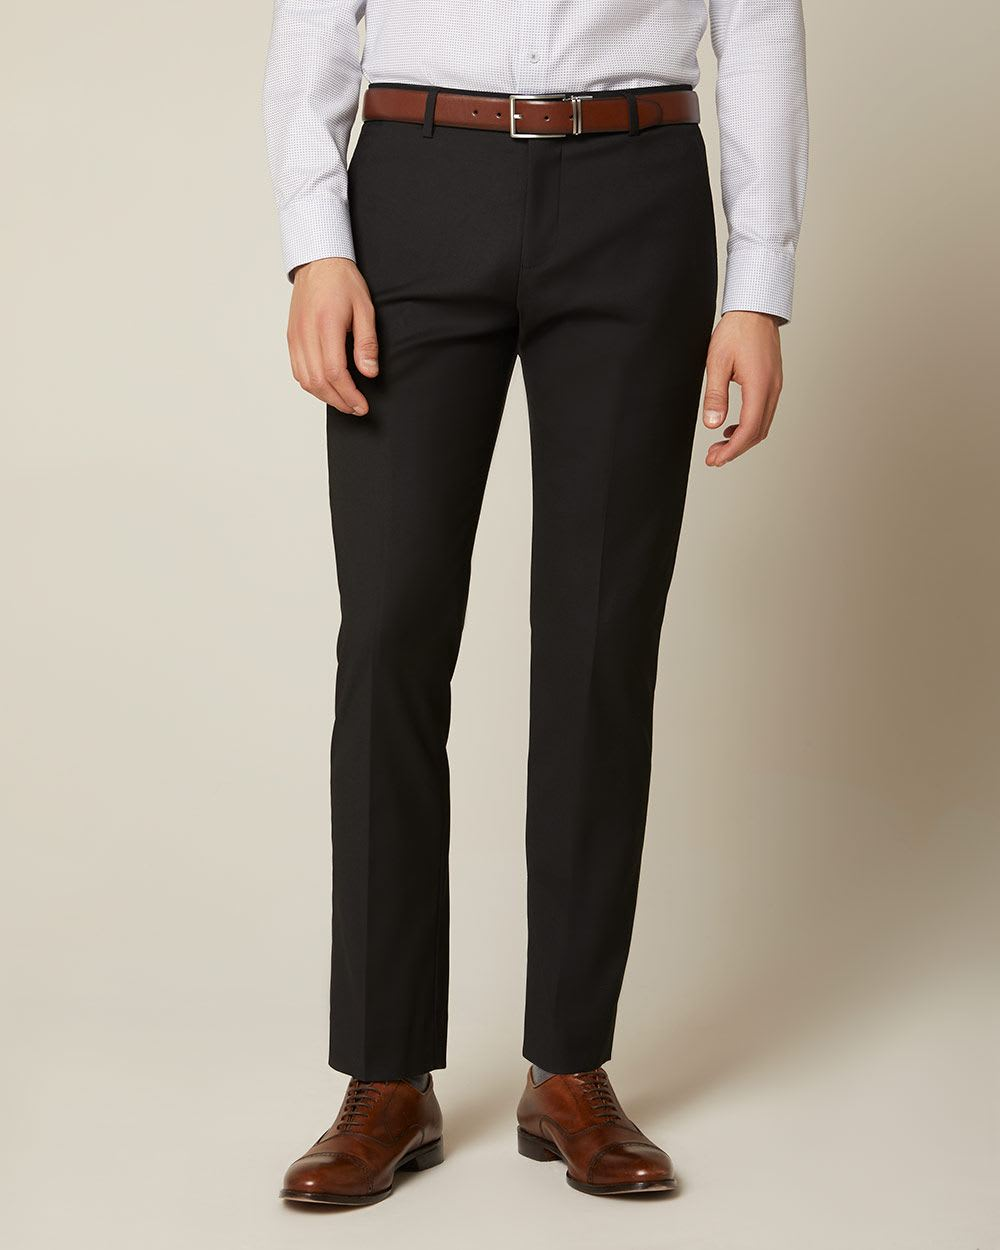 Essential Tailored Fit suit Pant - 30''